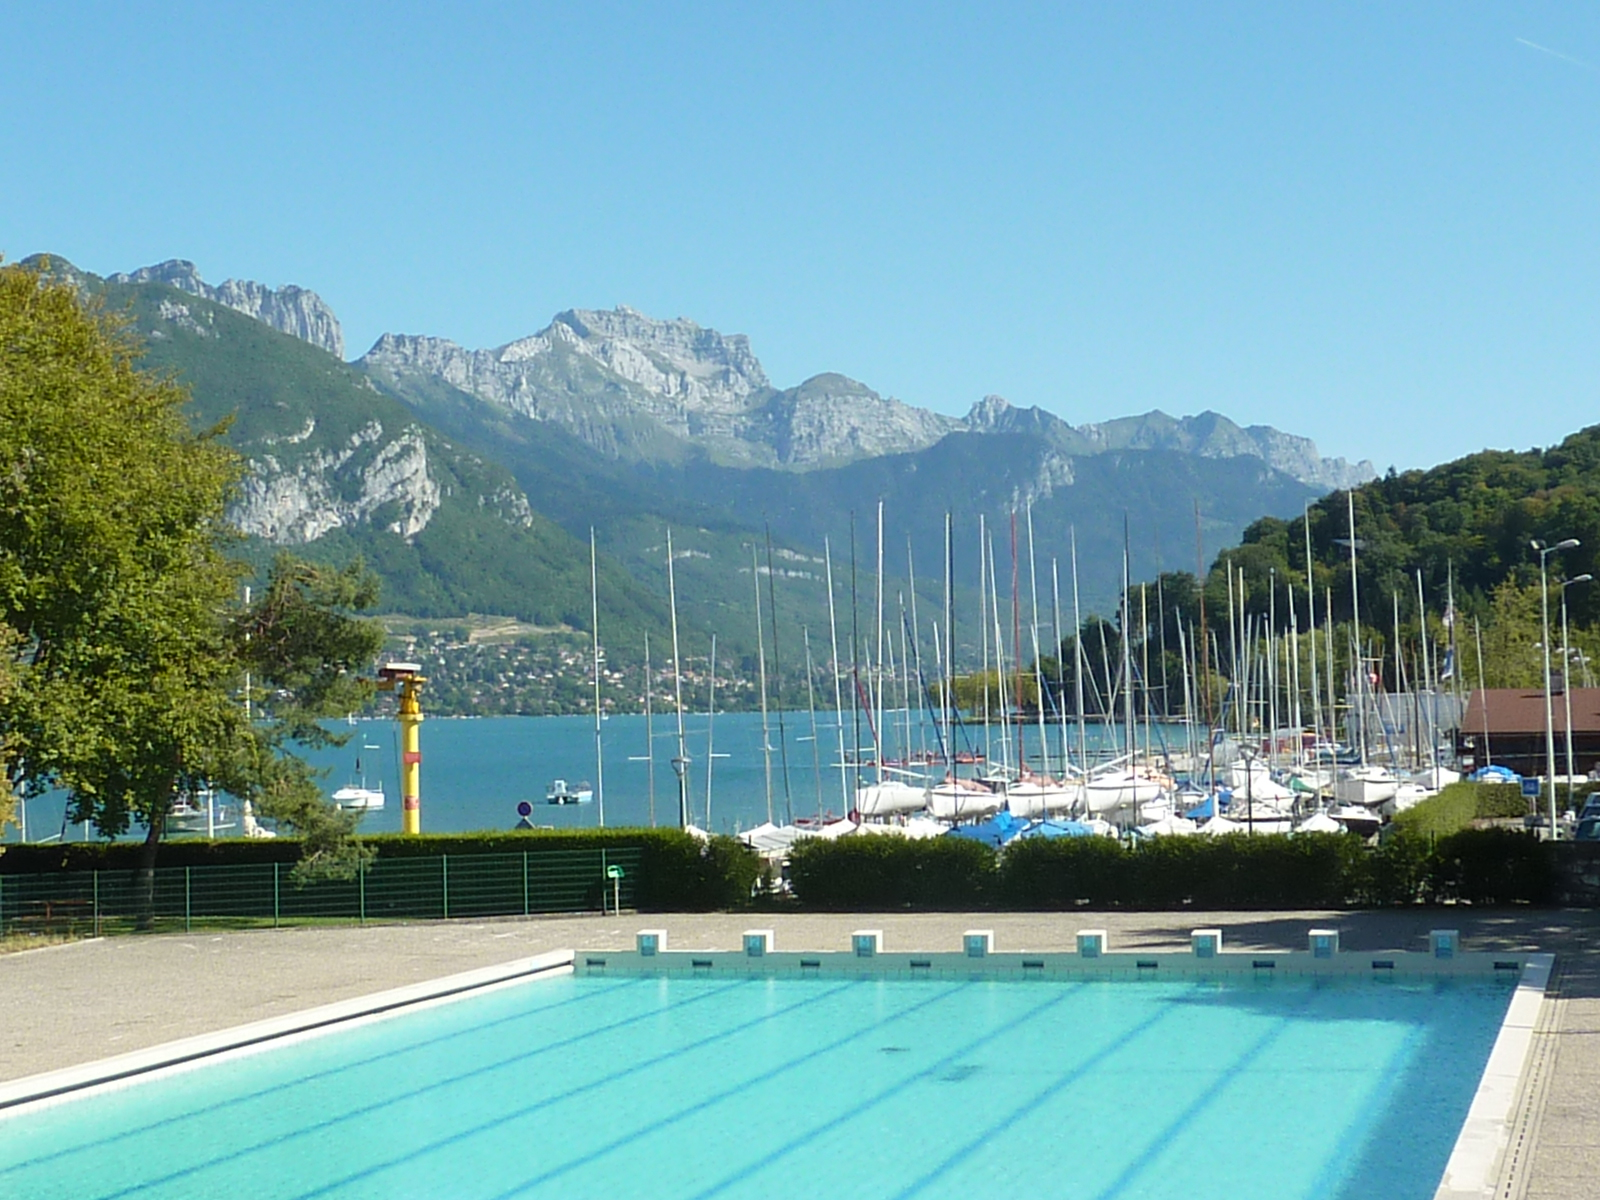 Usagers des piscines agglo annecy up2a for Piscine spa annecy